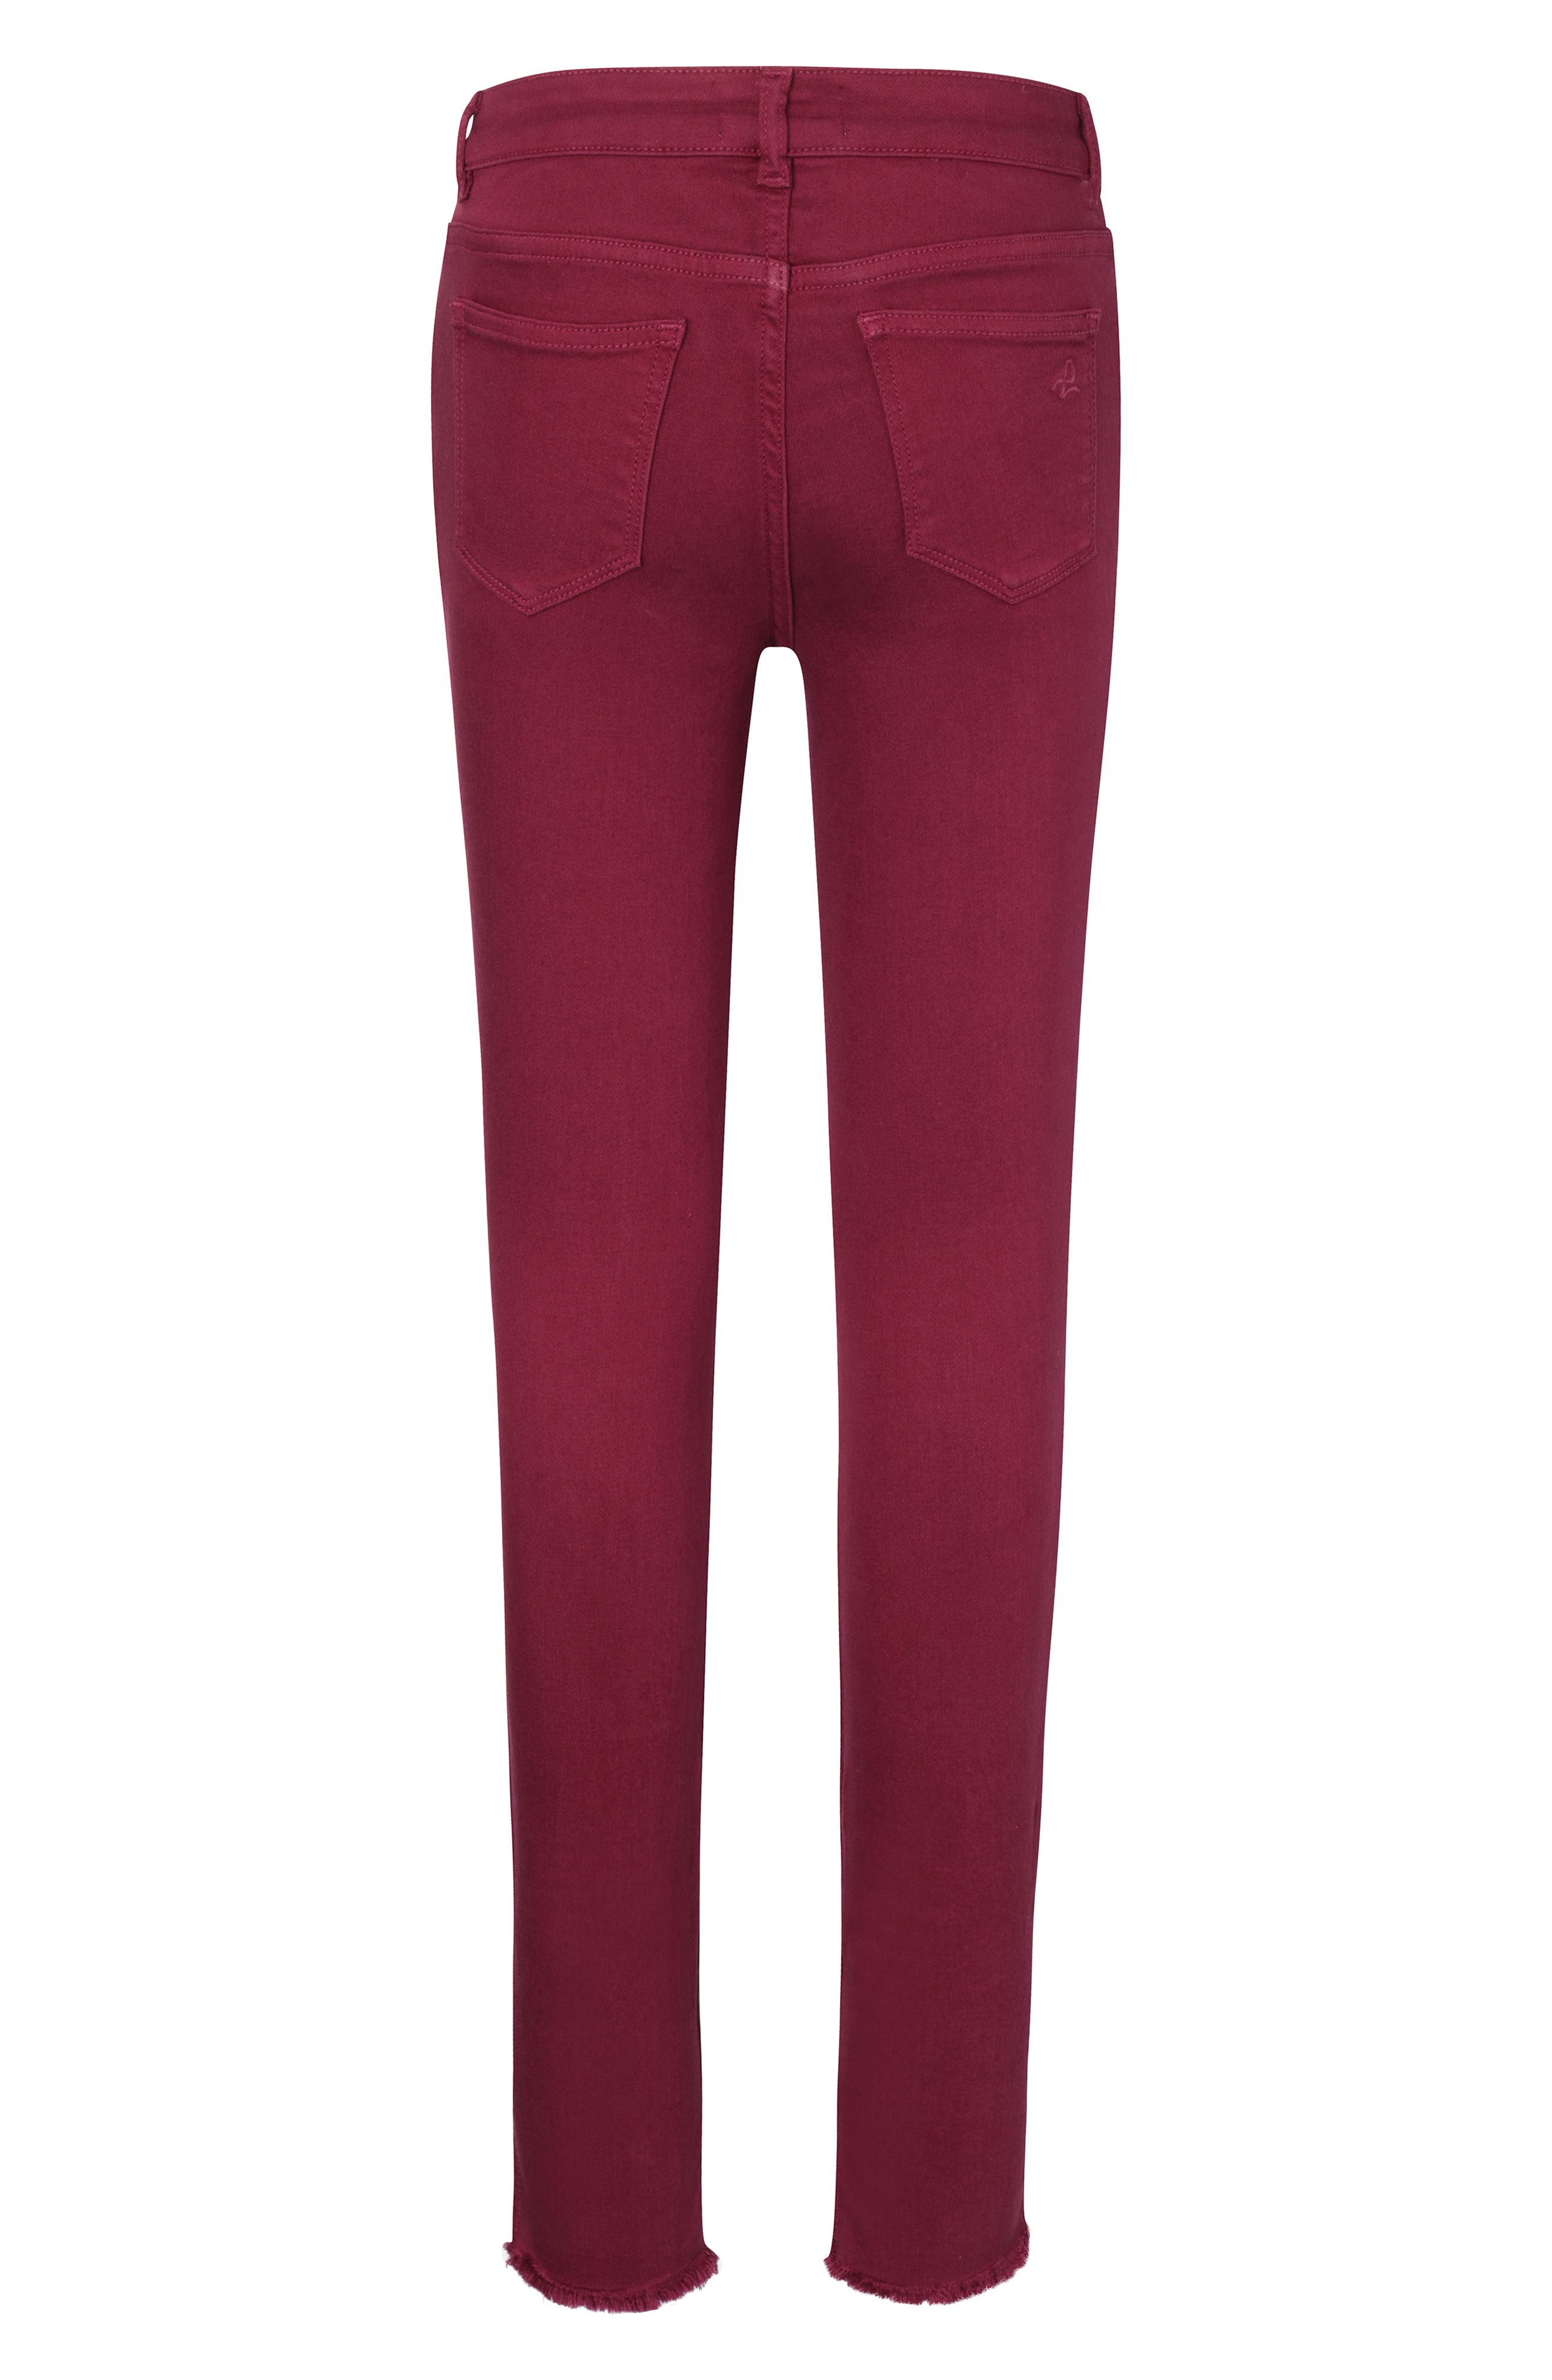 Chloe Skinny Jeans,                             Alternate thumbnail 2, color,                             VERY BERRY